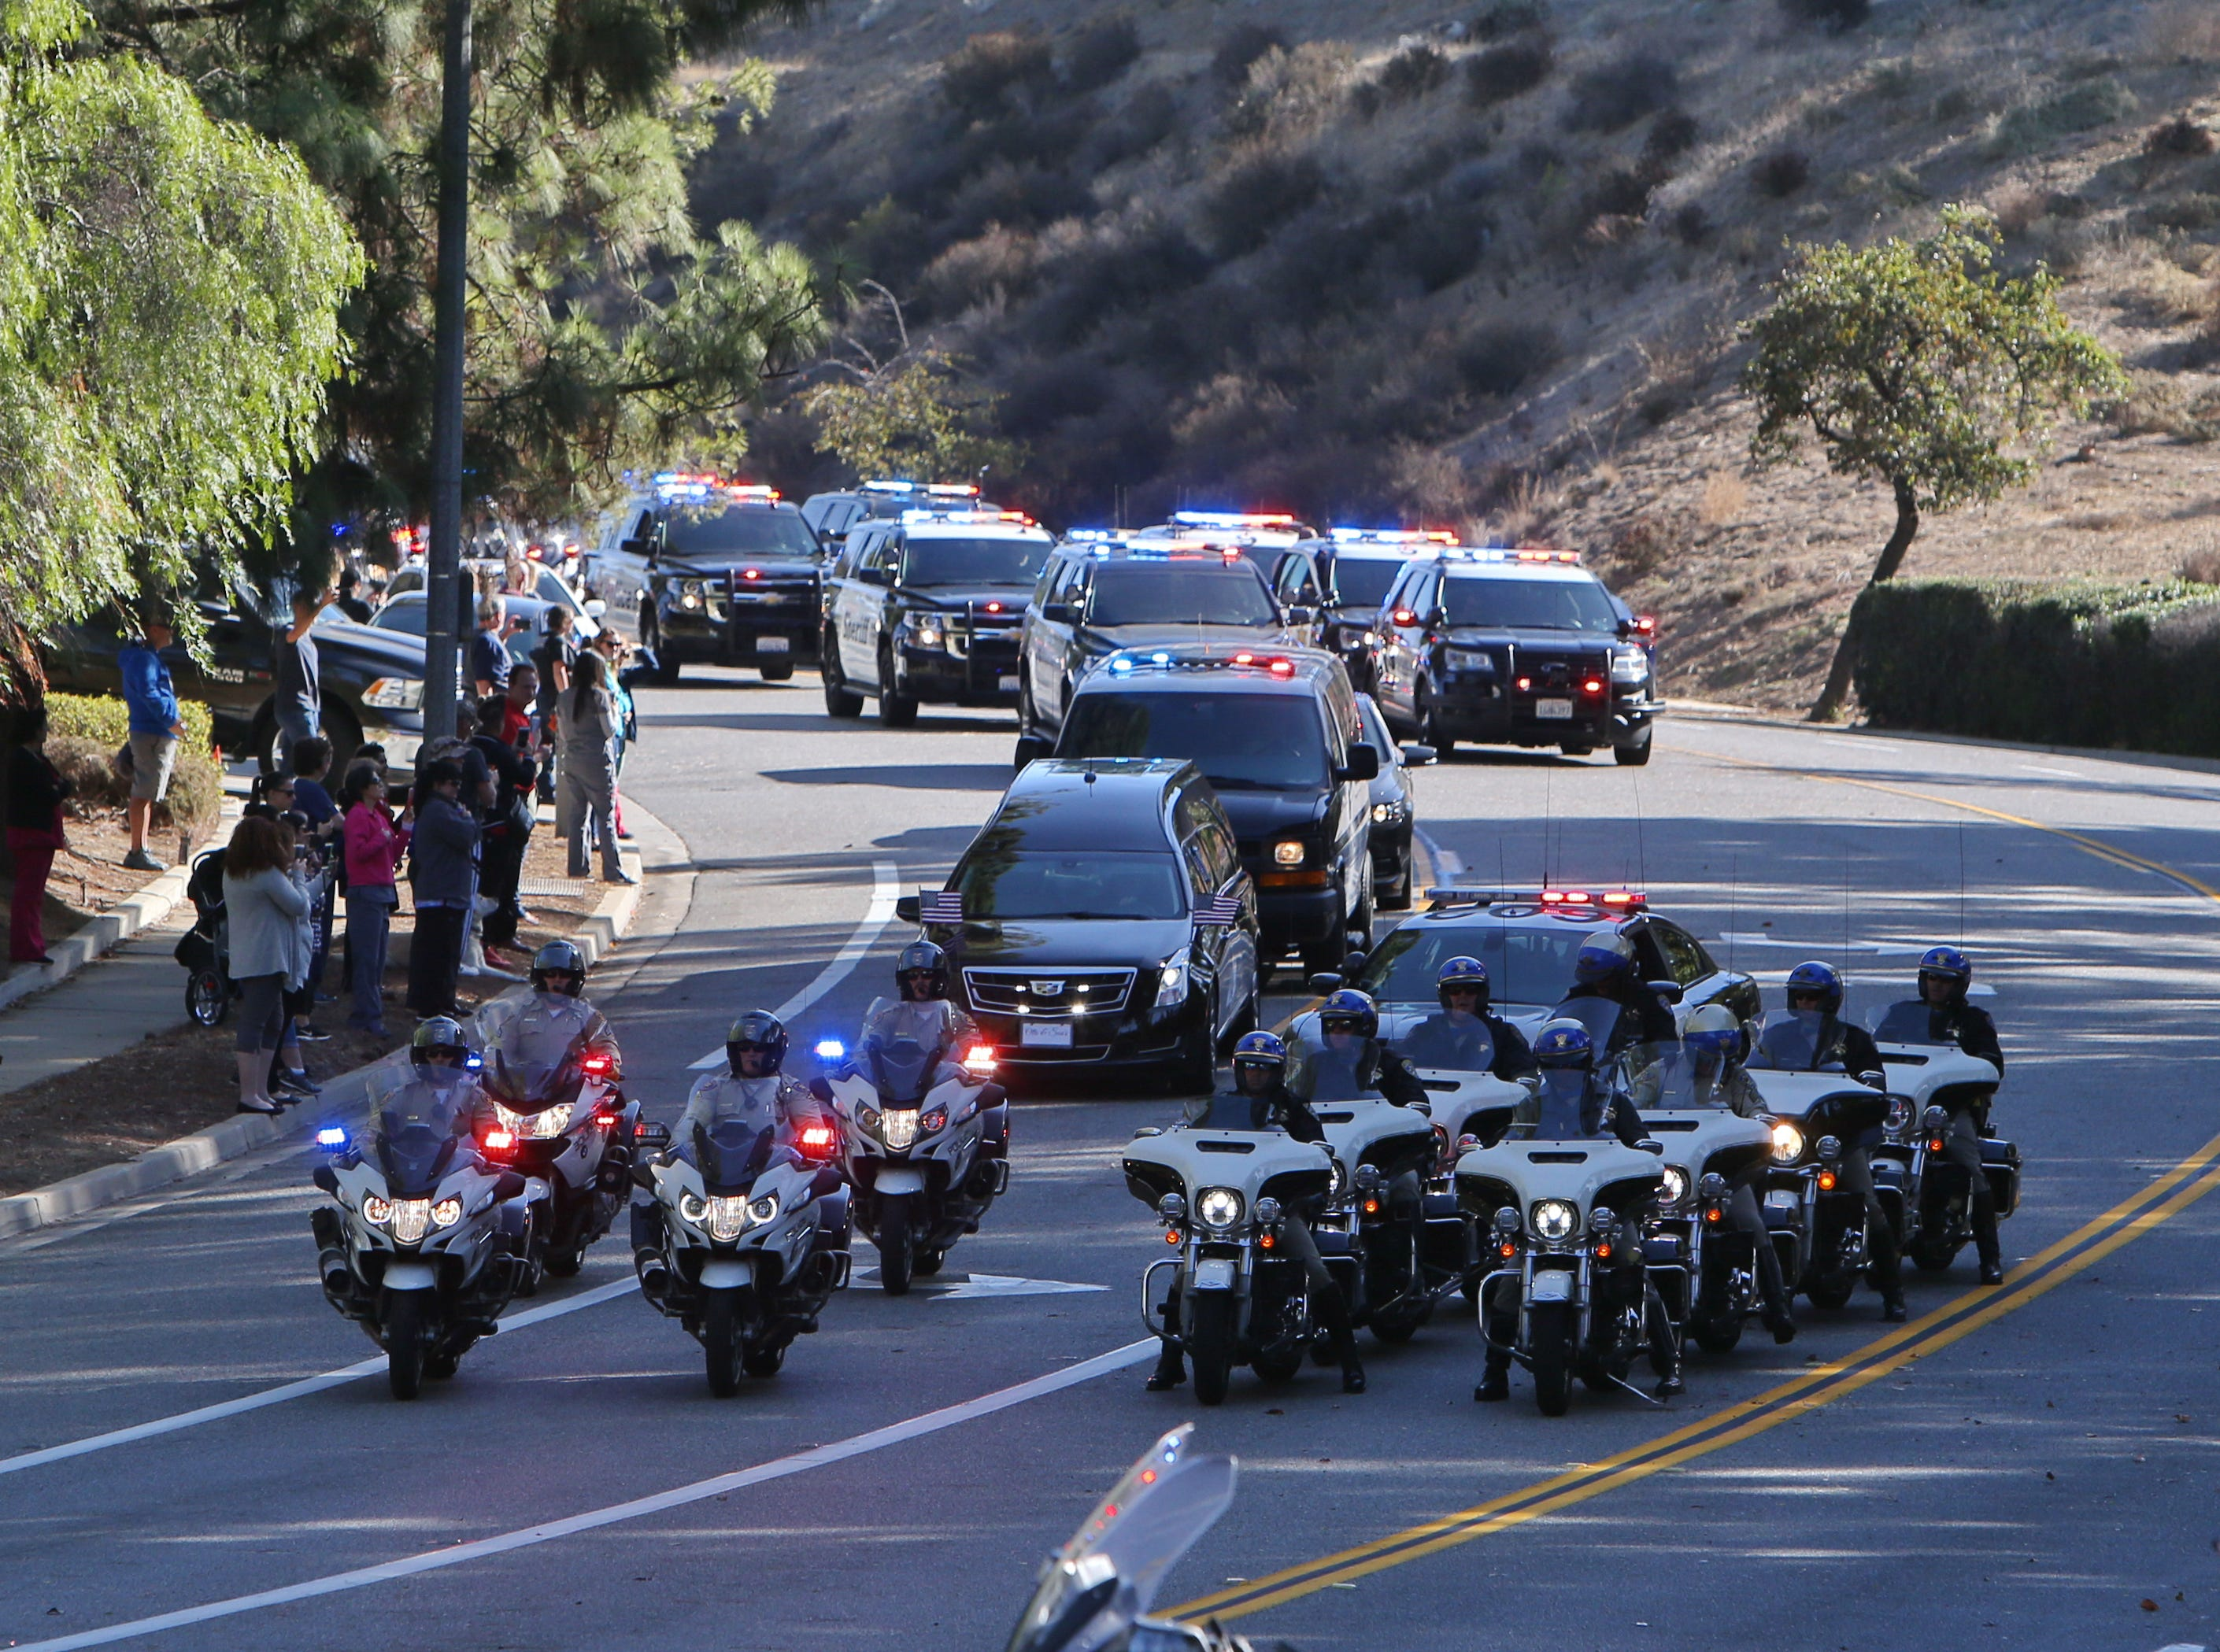 The procession leave Los Robles Hospital Thursday as it escorts Ventura County Sheriff Sgt. Ron Helus, who was killed inside the Borderline Bar and Grill in Thousand Oaks late Wednesday during a mass shooting.